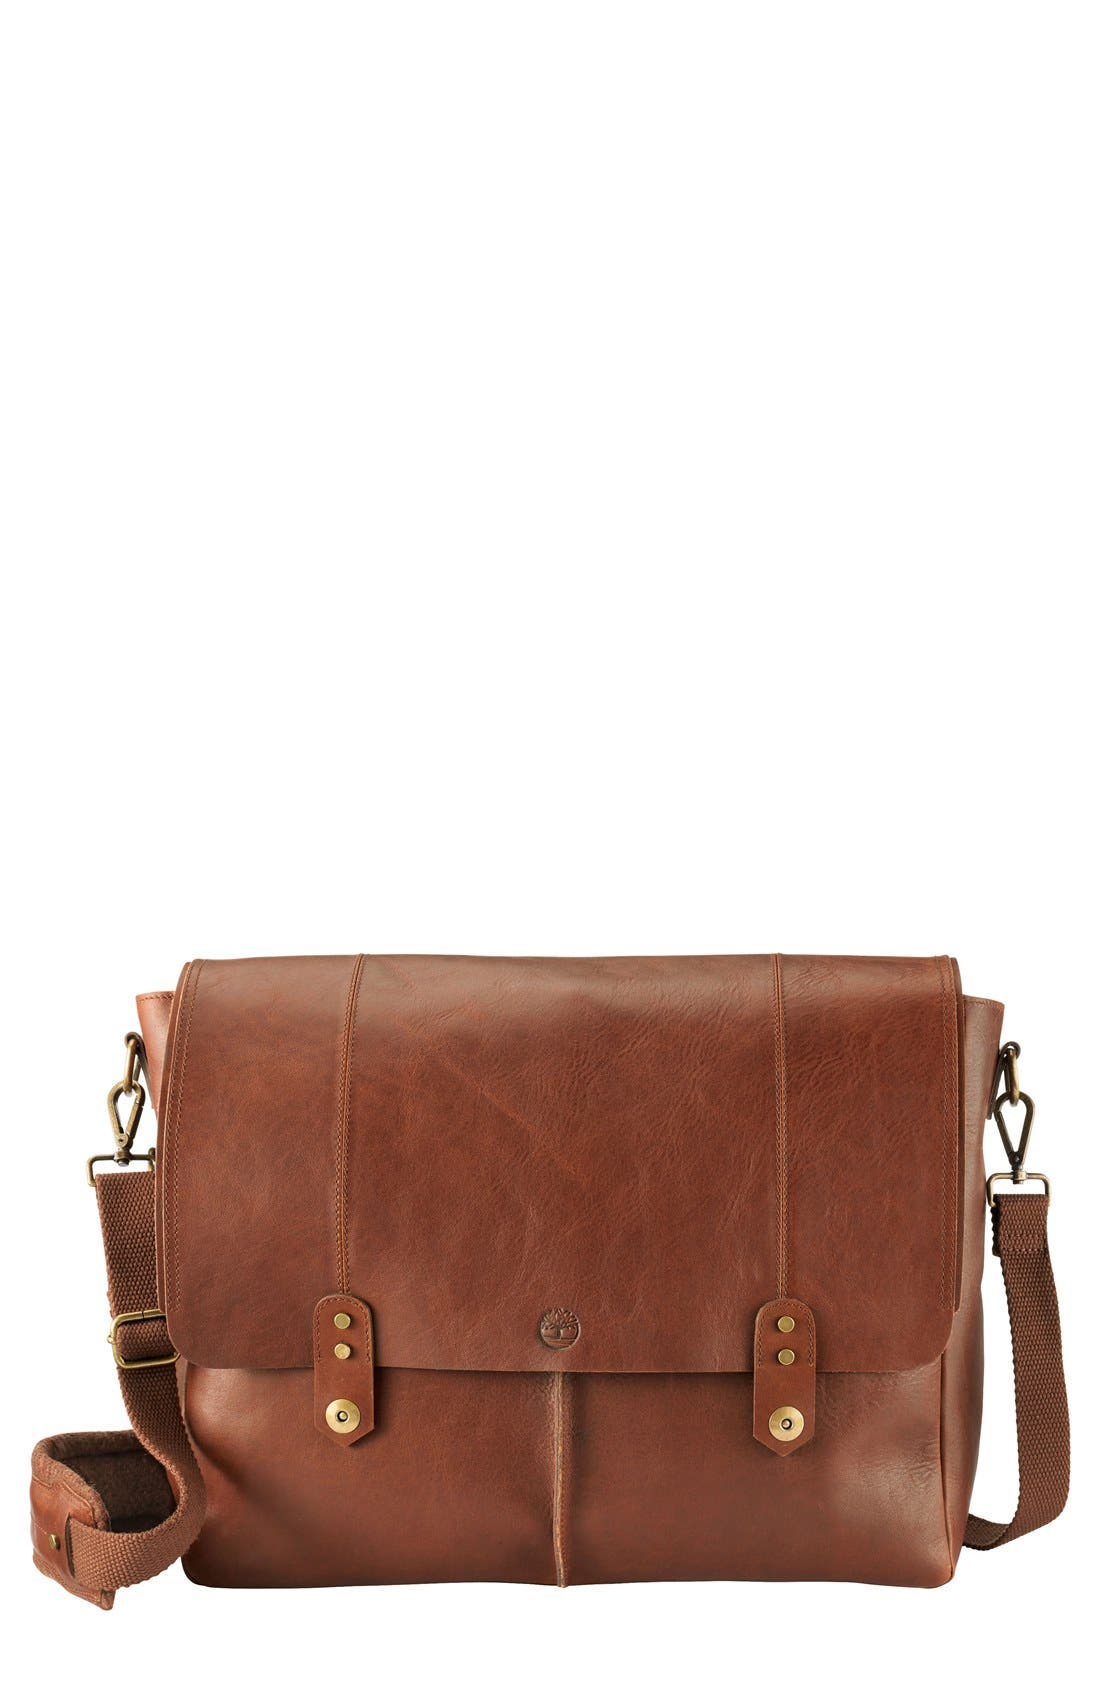 Alternate Image 1 Selected - Timberland 'Walnut Hill' Leather Messenger Bag